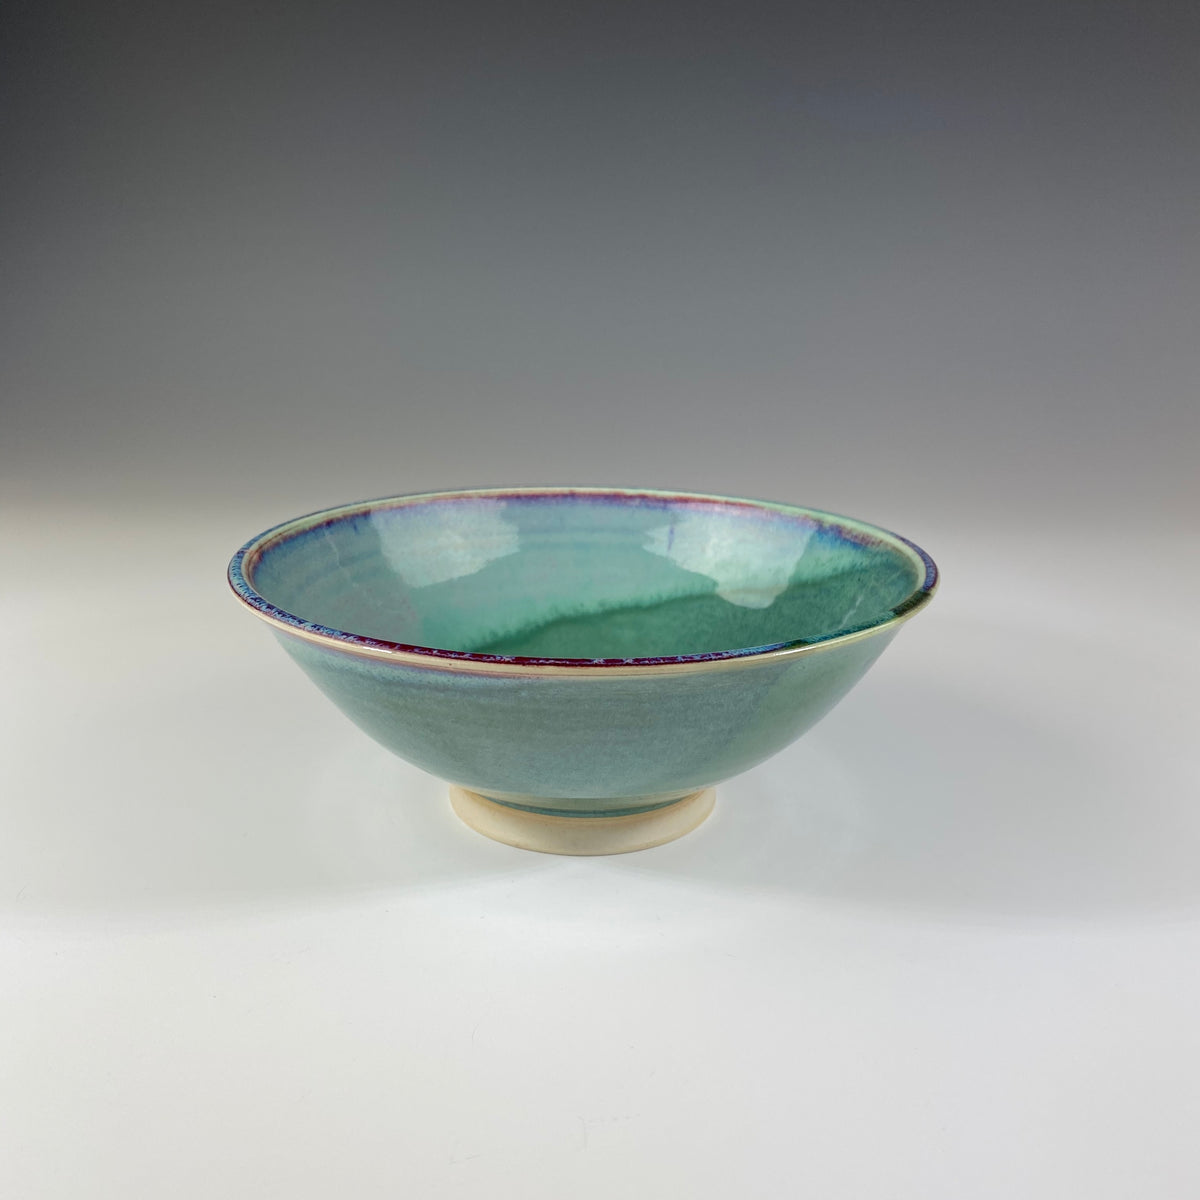 Dessert Bowl - Heart of the Home PA